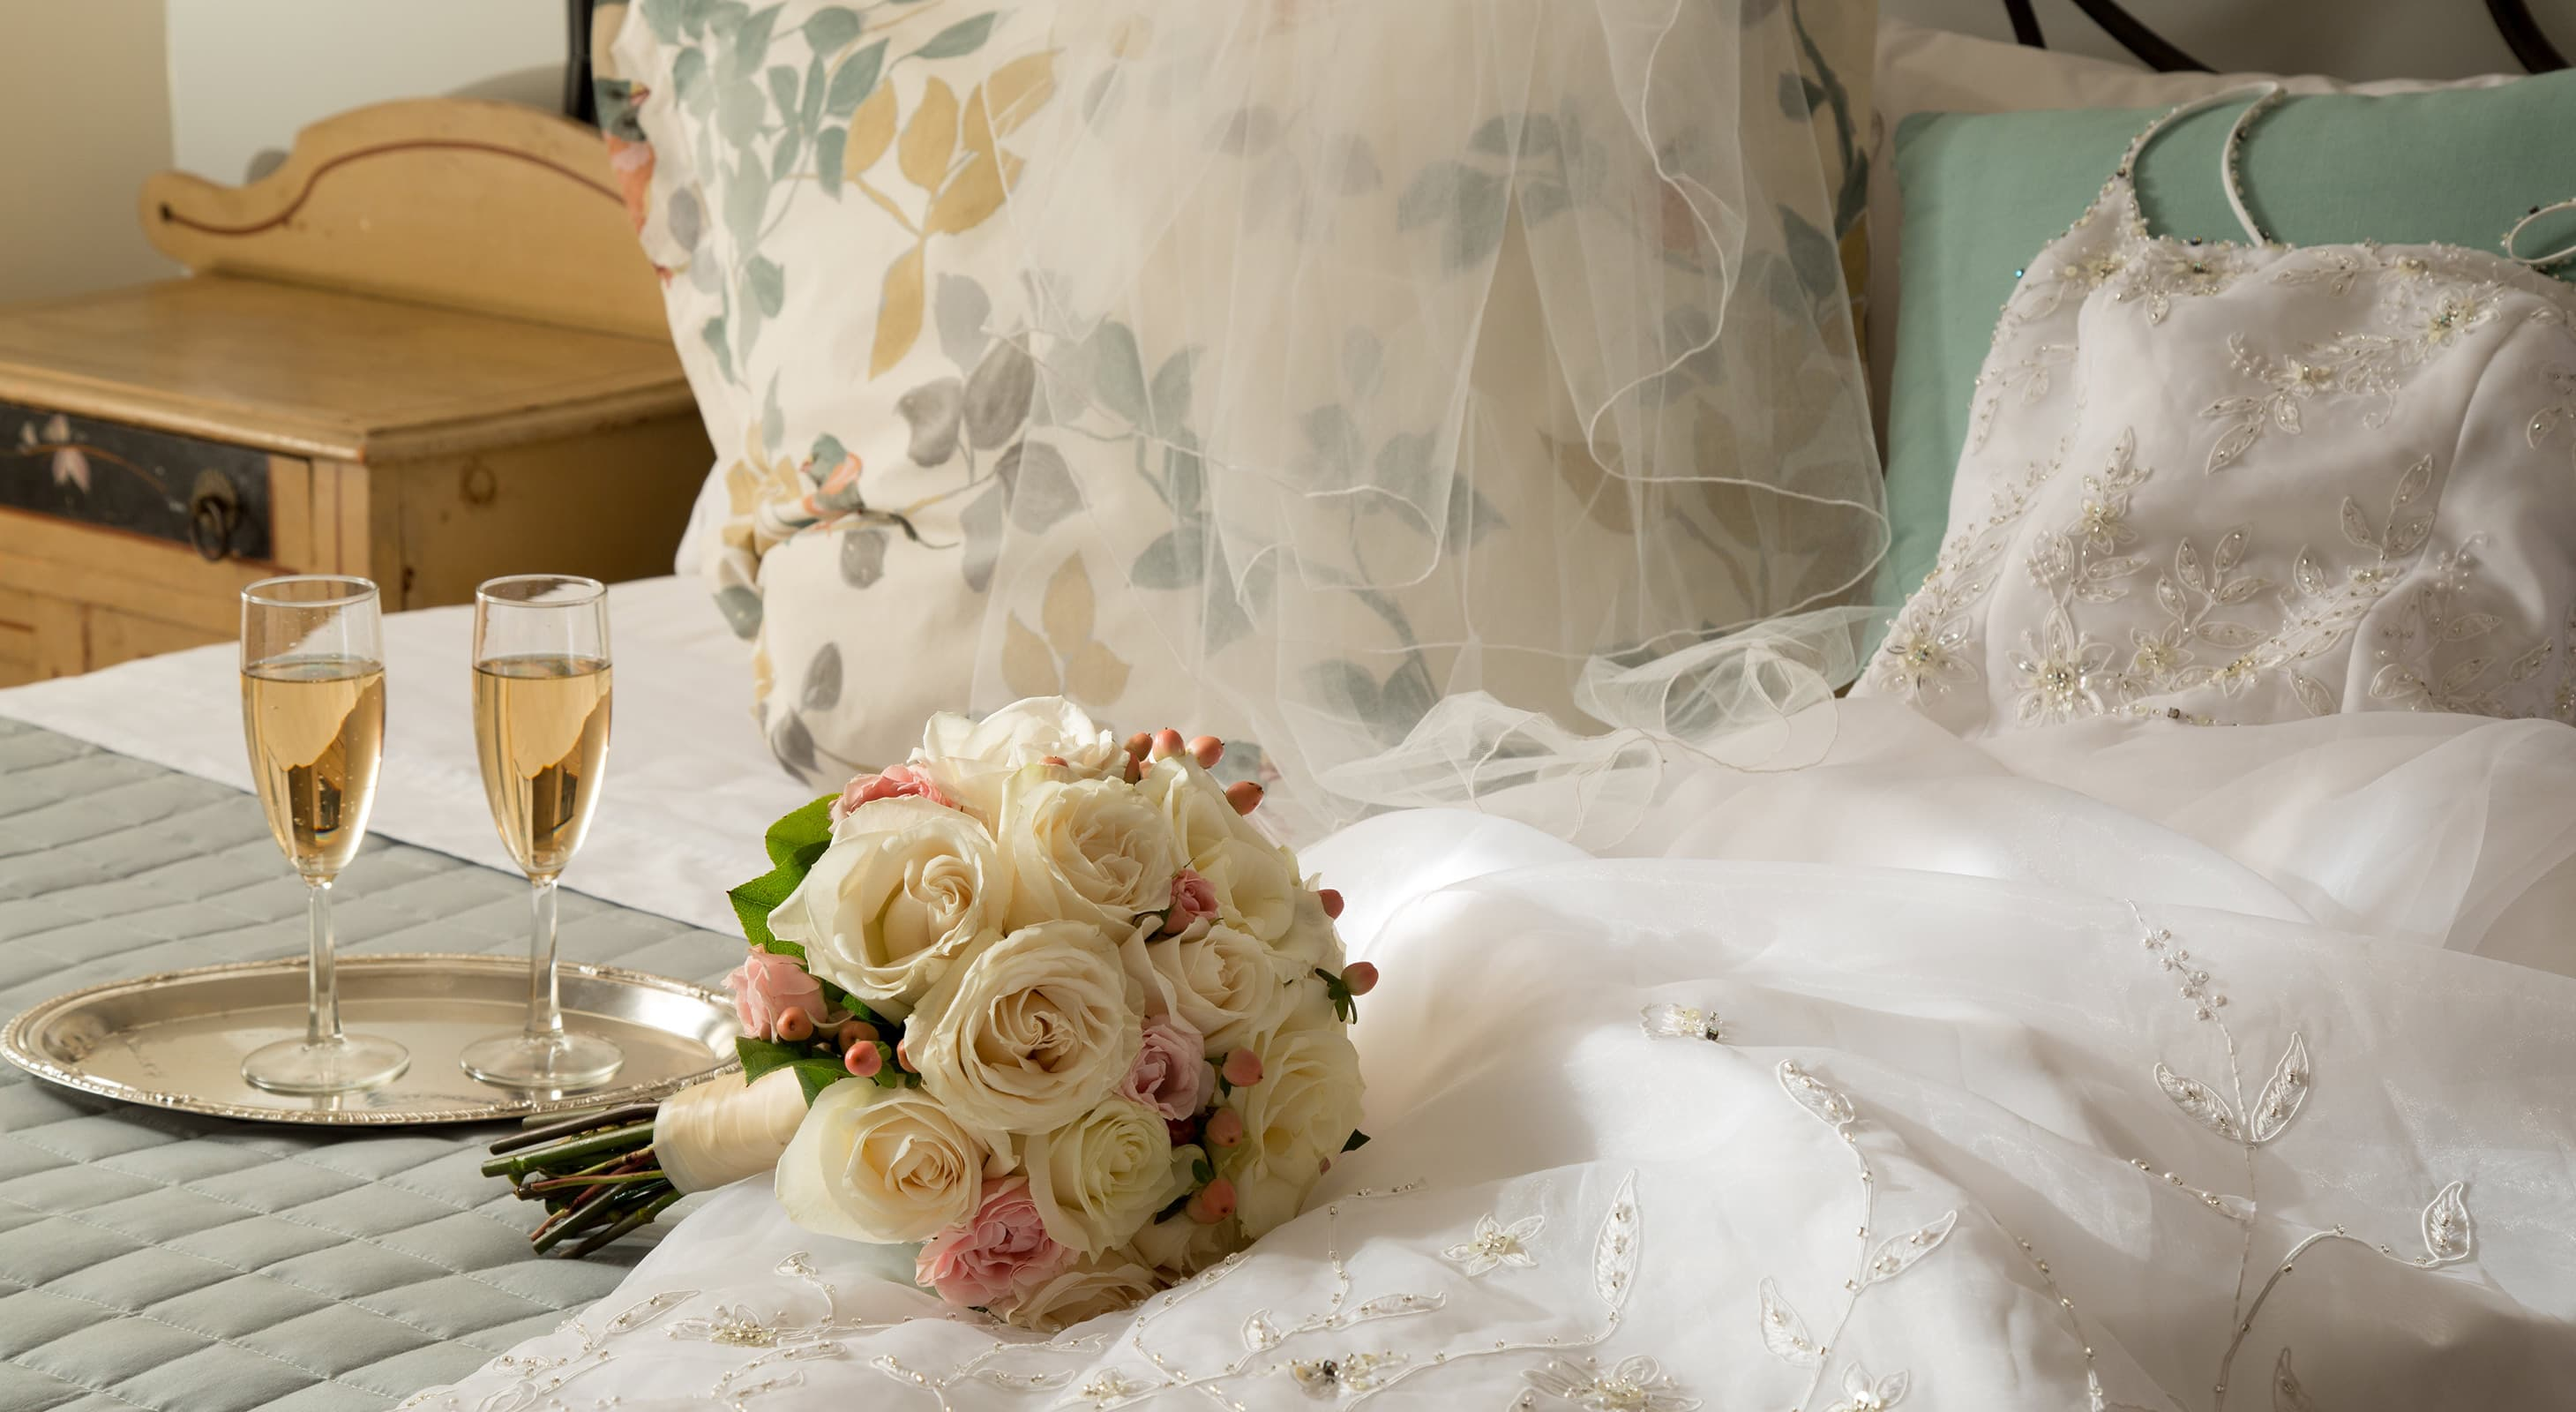 wedding dress, bouquet, and champagne on a bed